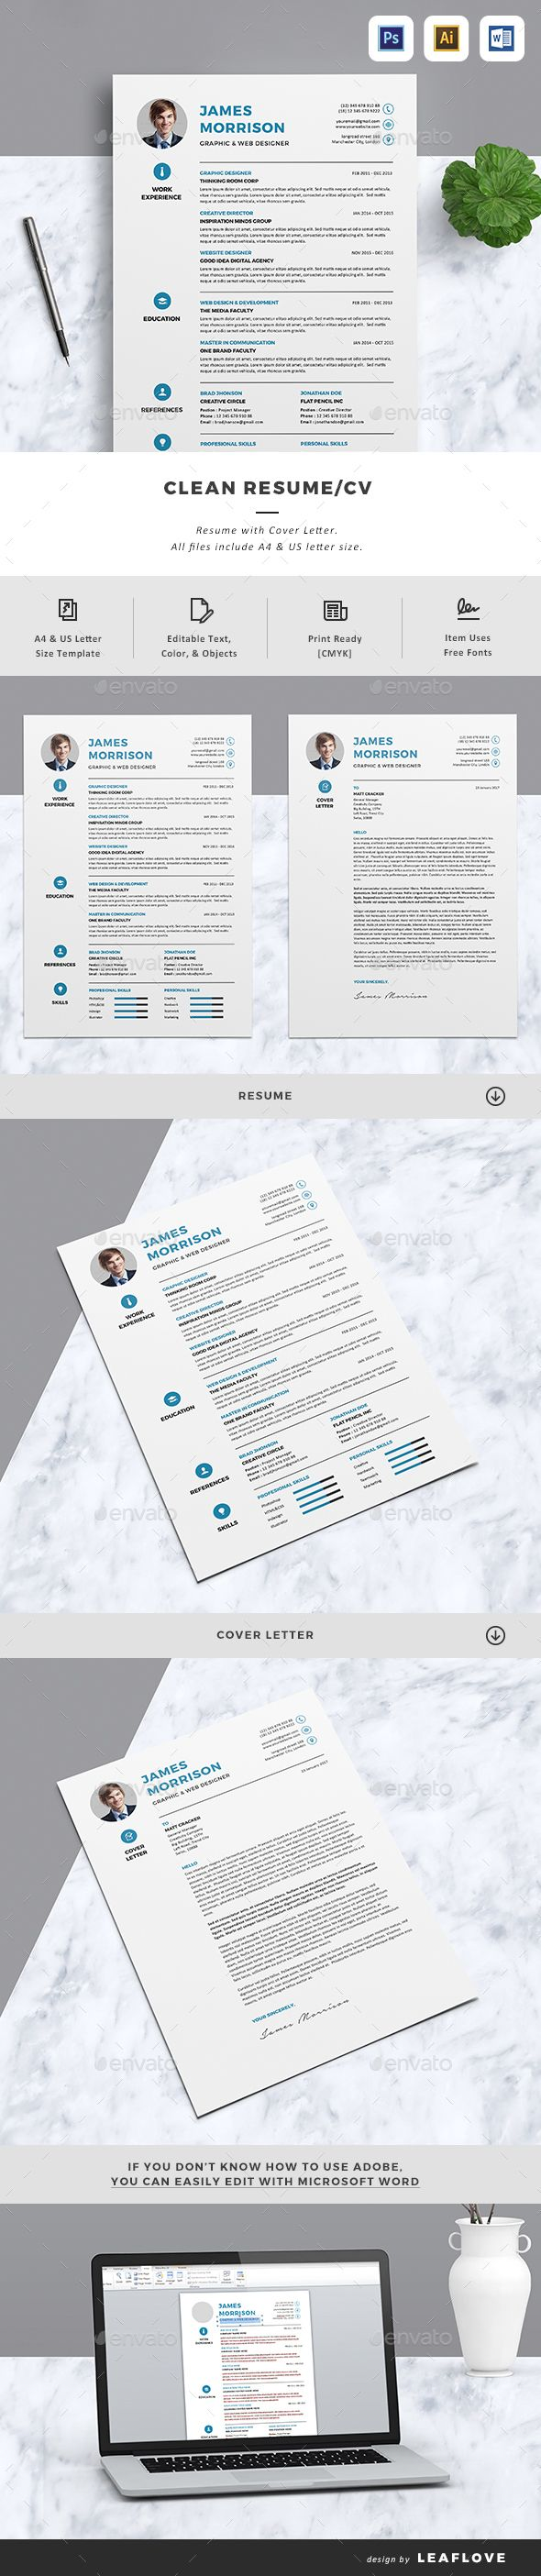 20 best Resume examples images on Pinterest   Resume examples, A ...